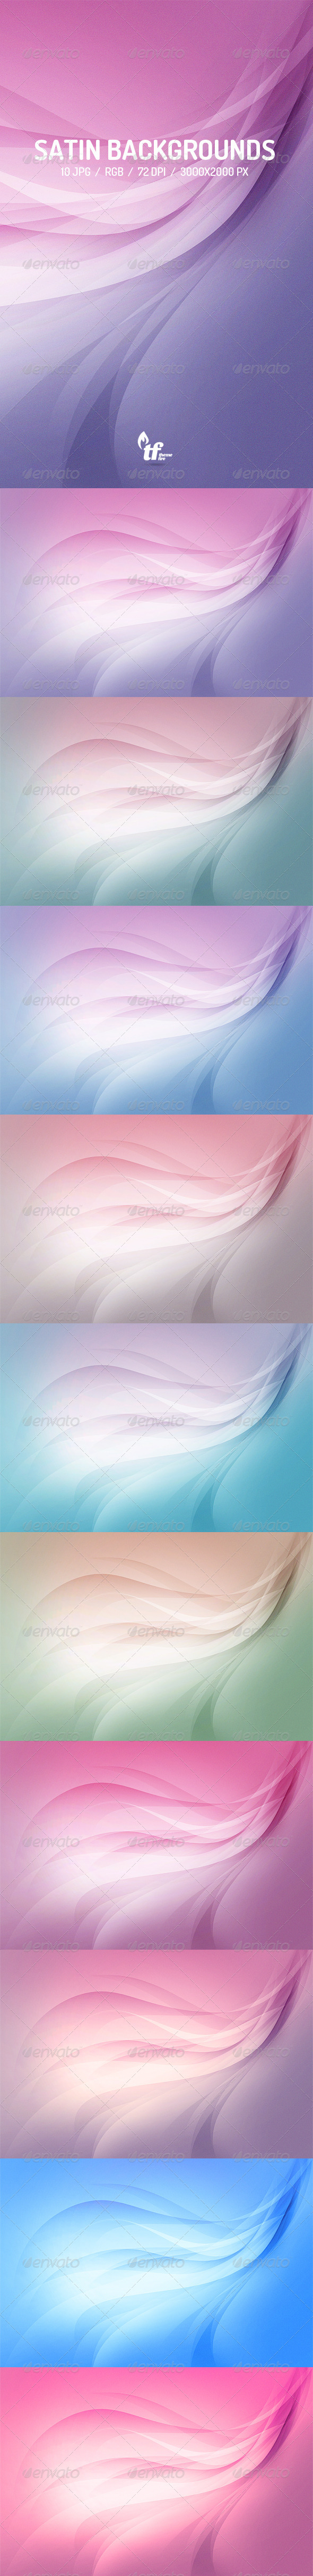 GraphicRiver Clean Satin Lines Background 7514855